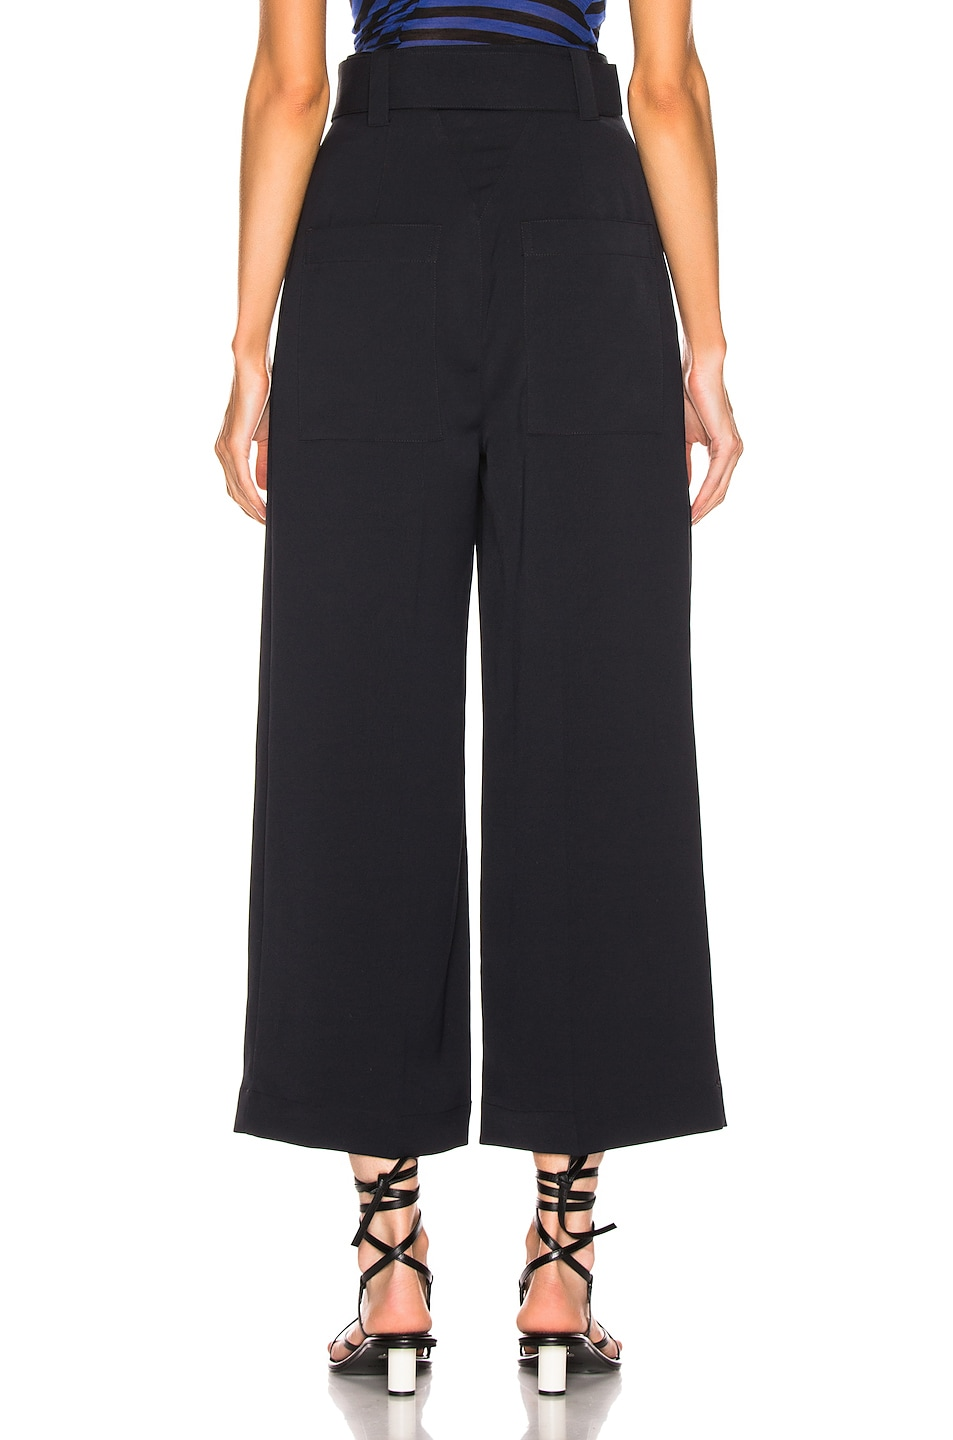 Image 3 of Proenza Schouler Belted Pant in Black